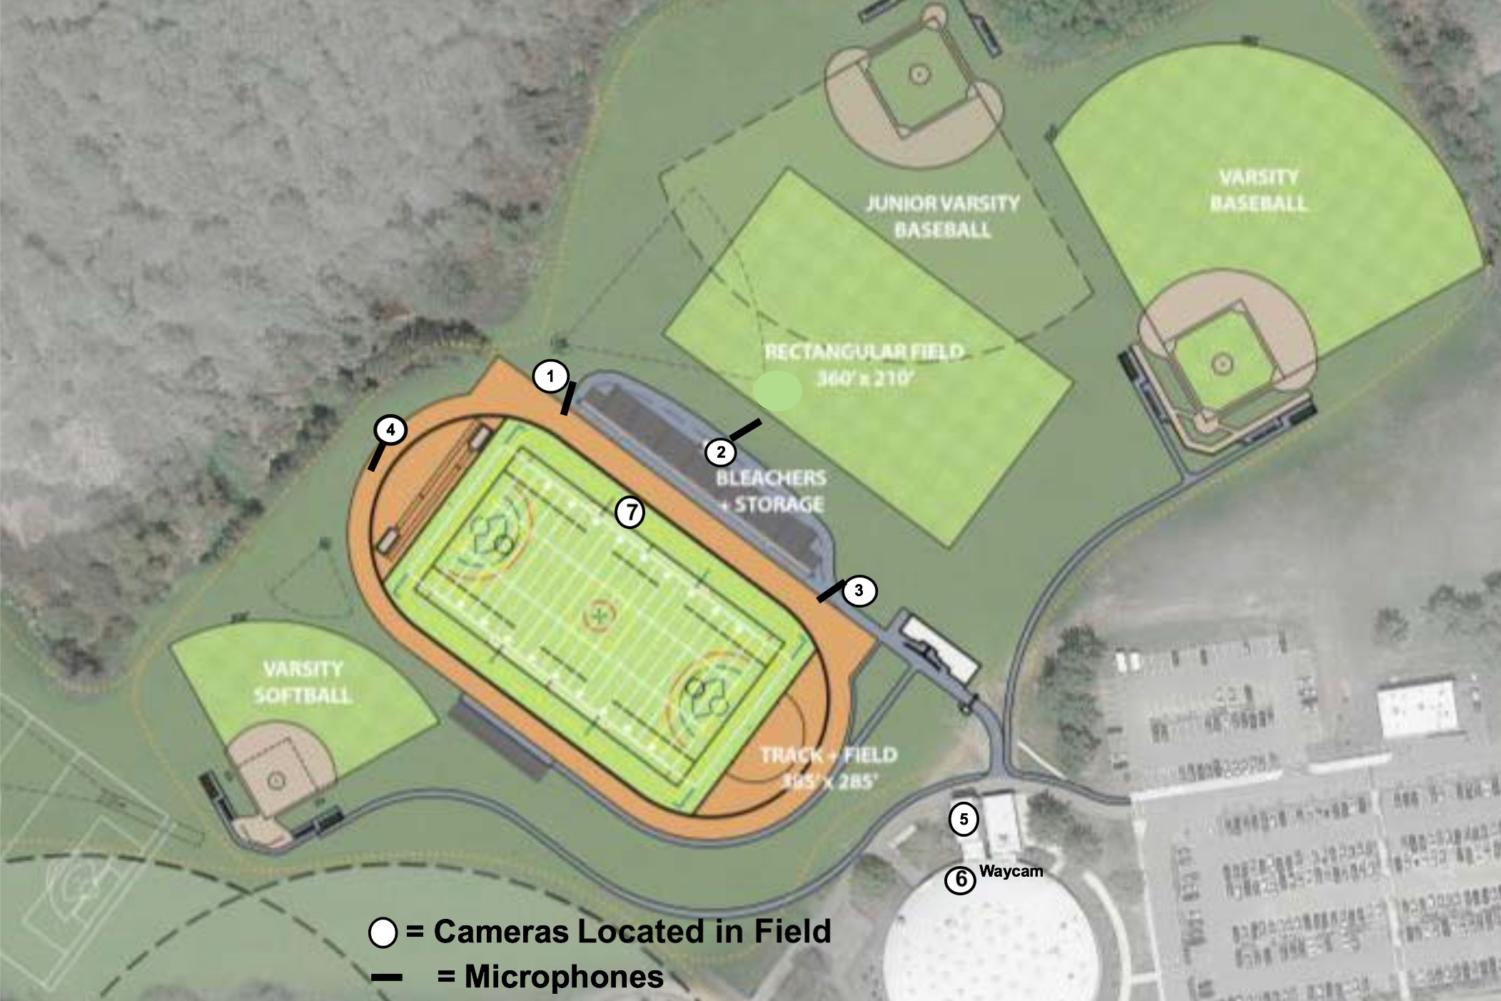 According to WayCAM studio director, script to screen and journalism broadcast teacher Jim Mullane, seven new cameras would be added to the field area with the new system. These cameras would have the capability to film all four sports fields.